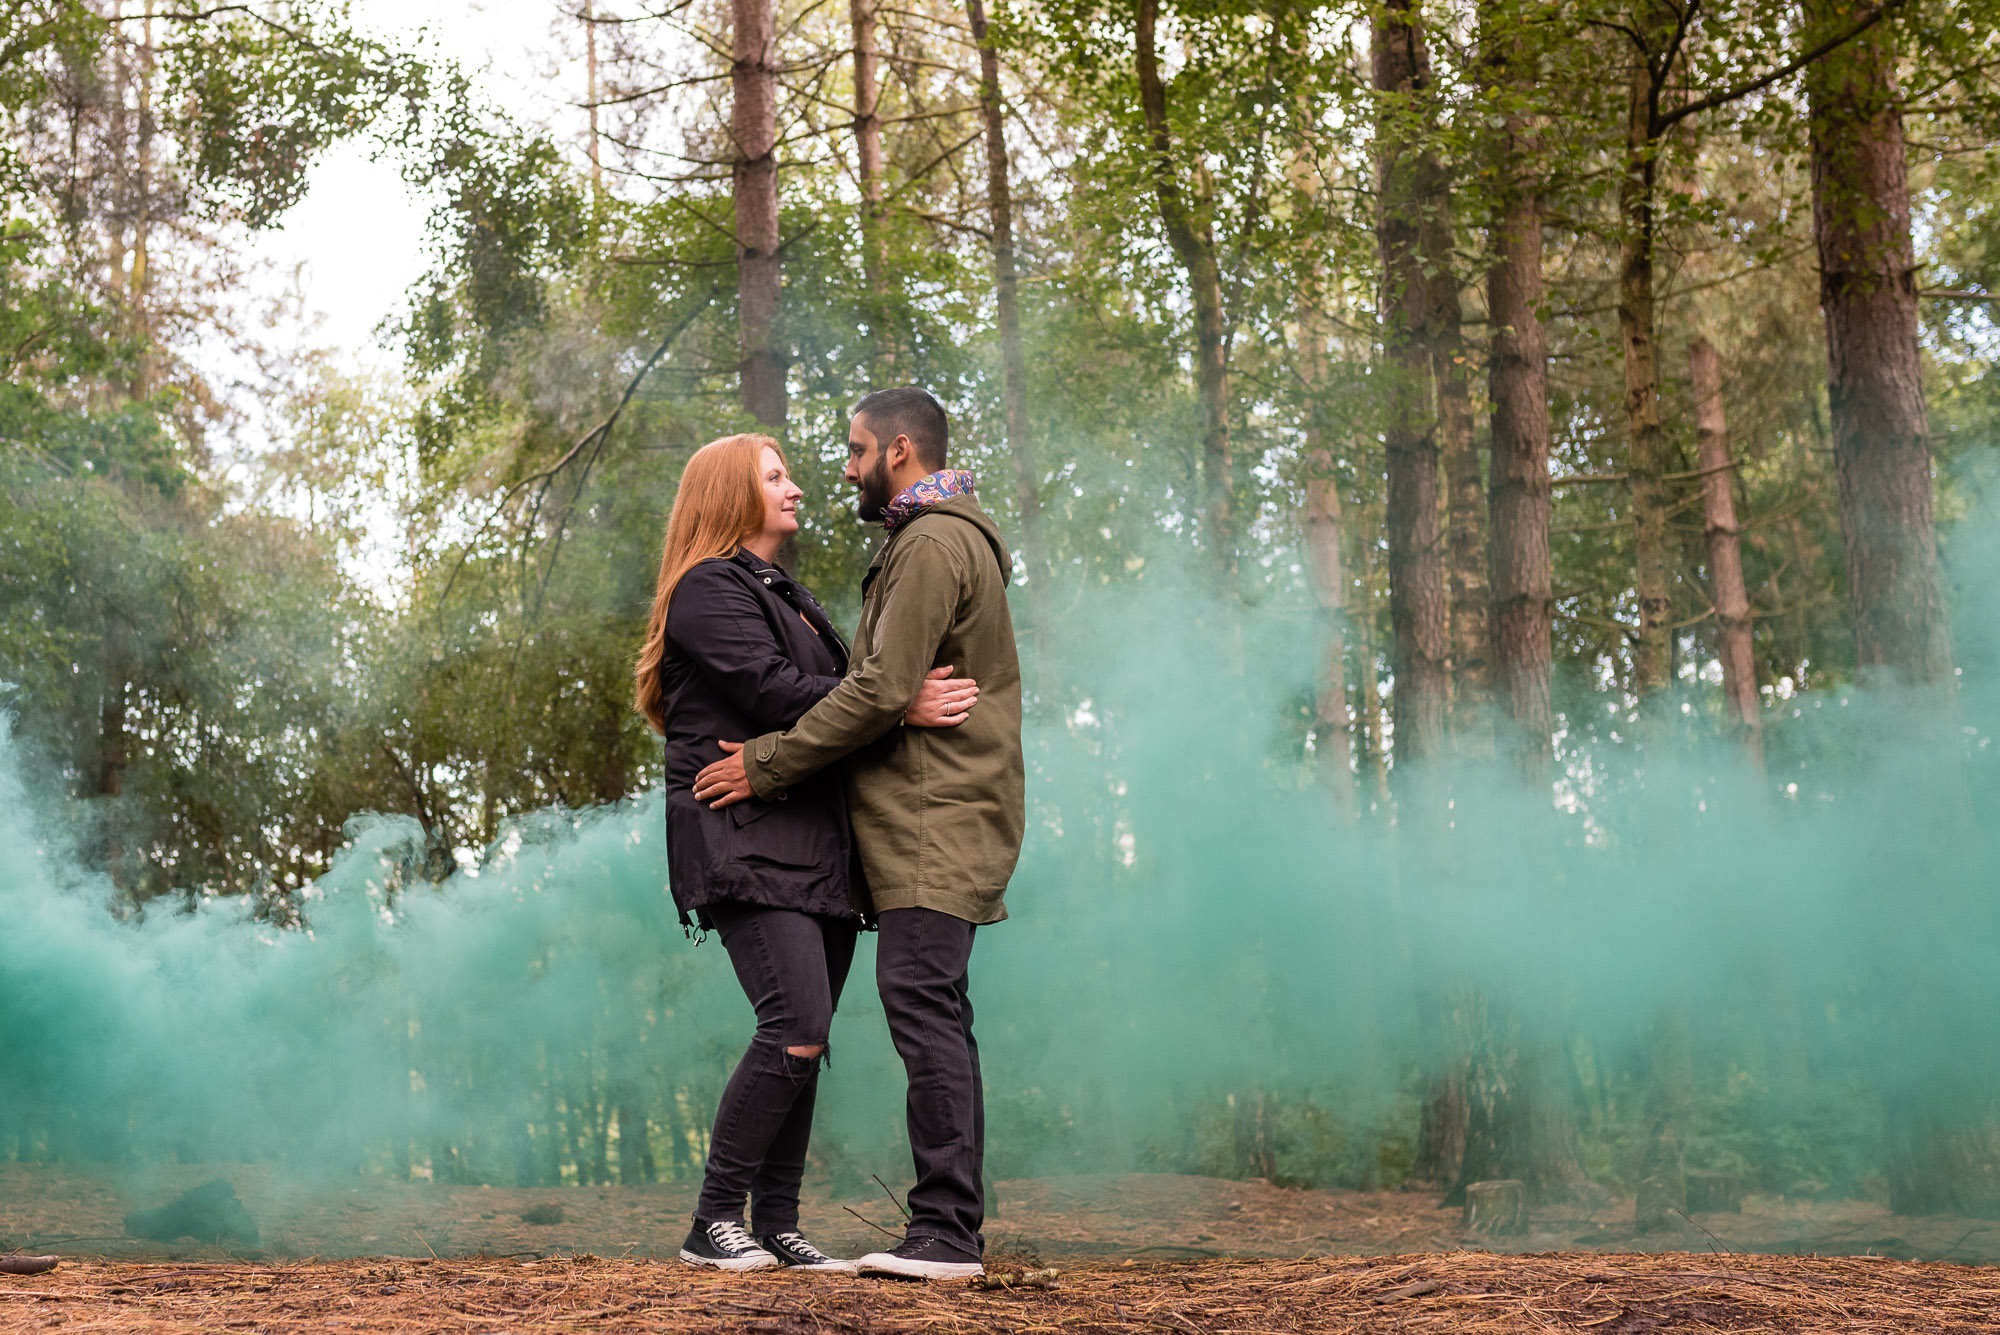 Smoke in Delamere Forest